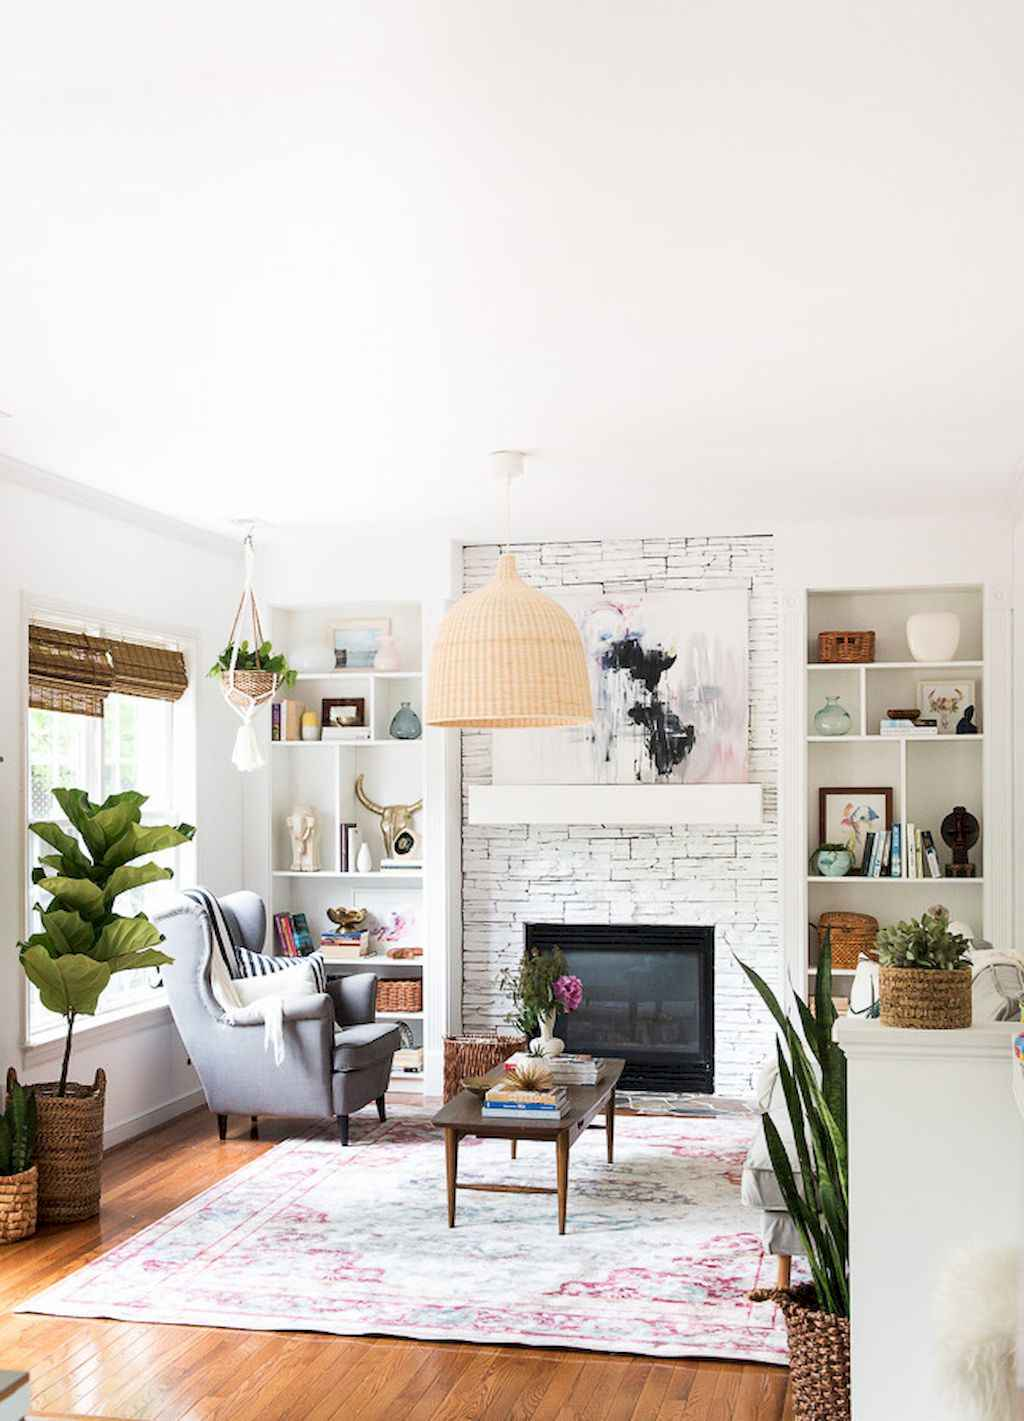 60 awesome eclectic fireplace ideas (26)